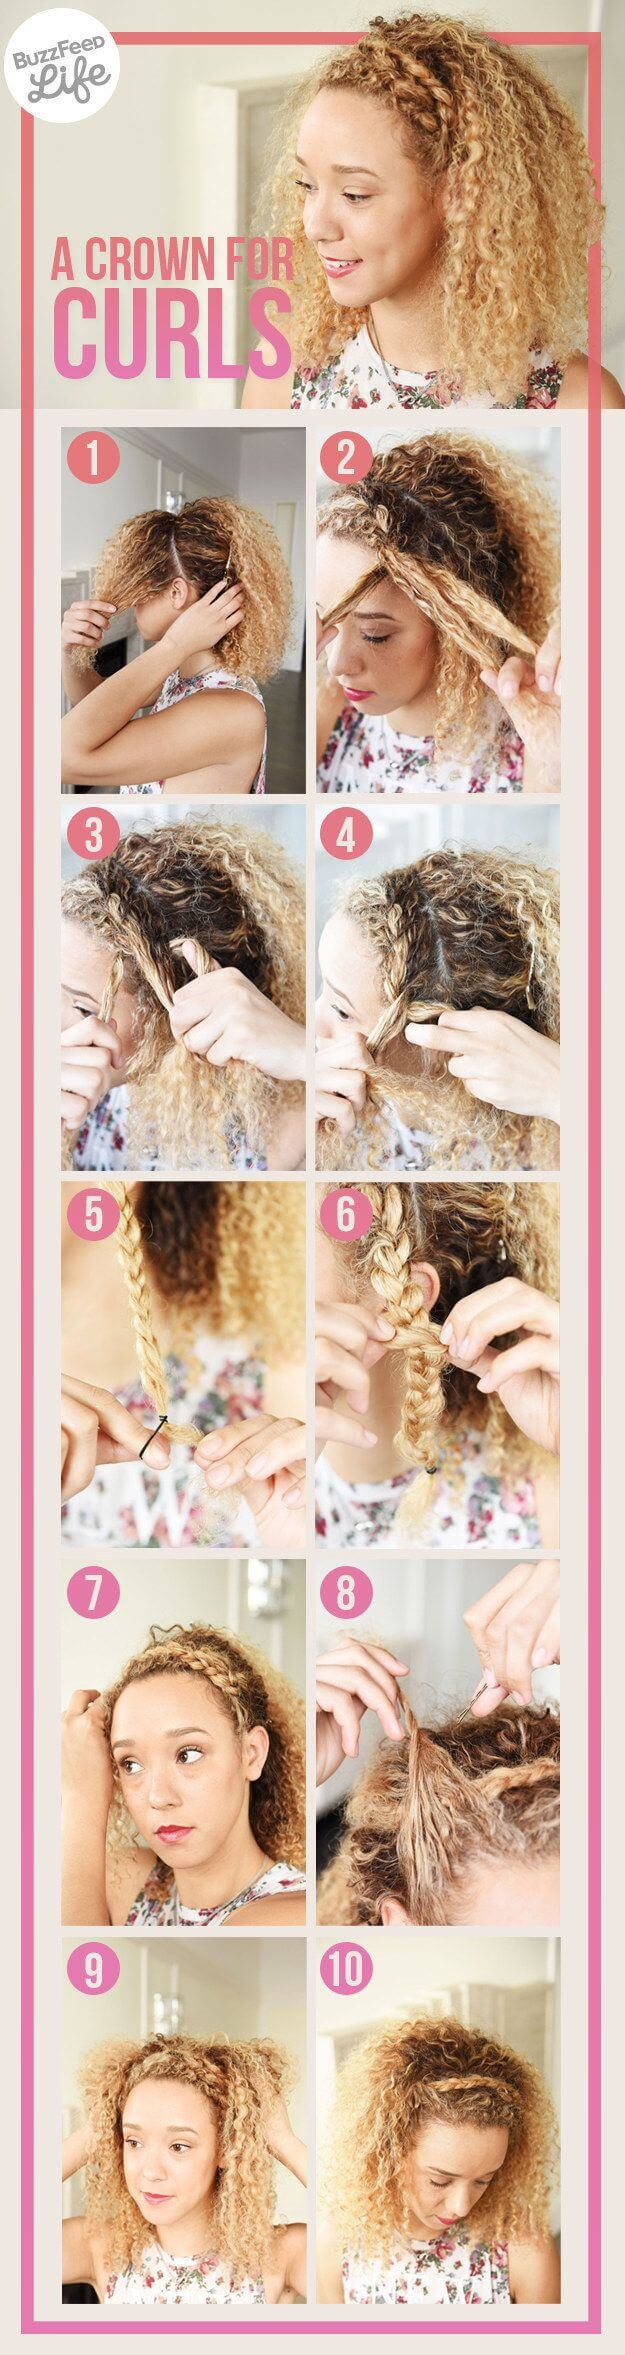 A crown for curls: a crown braid for any hair texture